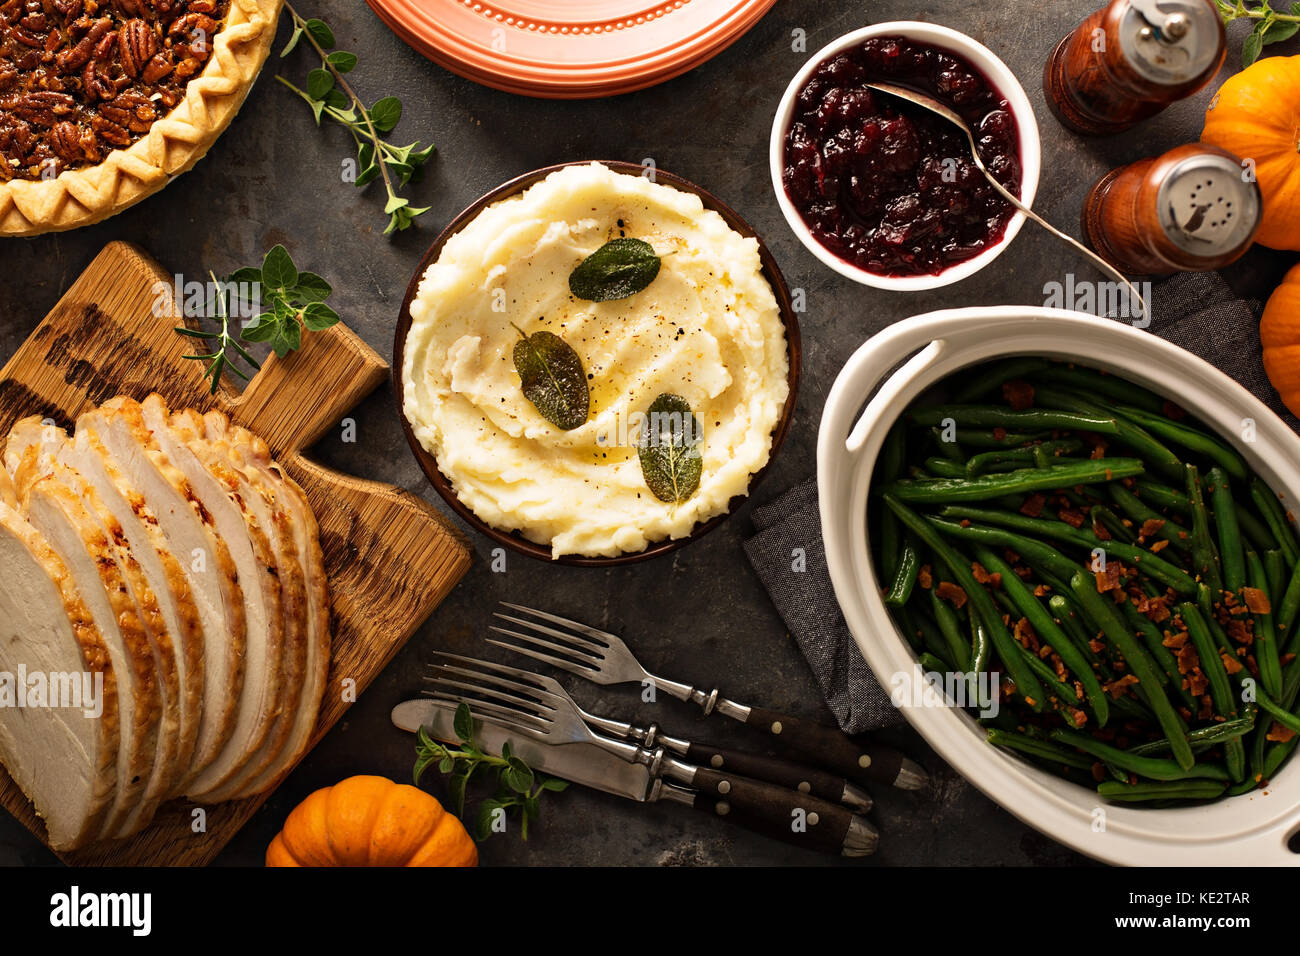 Mashed potatoes with butter and sage, side dish for Thanksgiving or Christmas dinner overhead shot - Stock Image